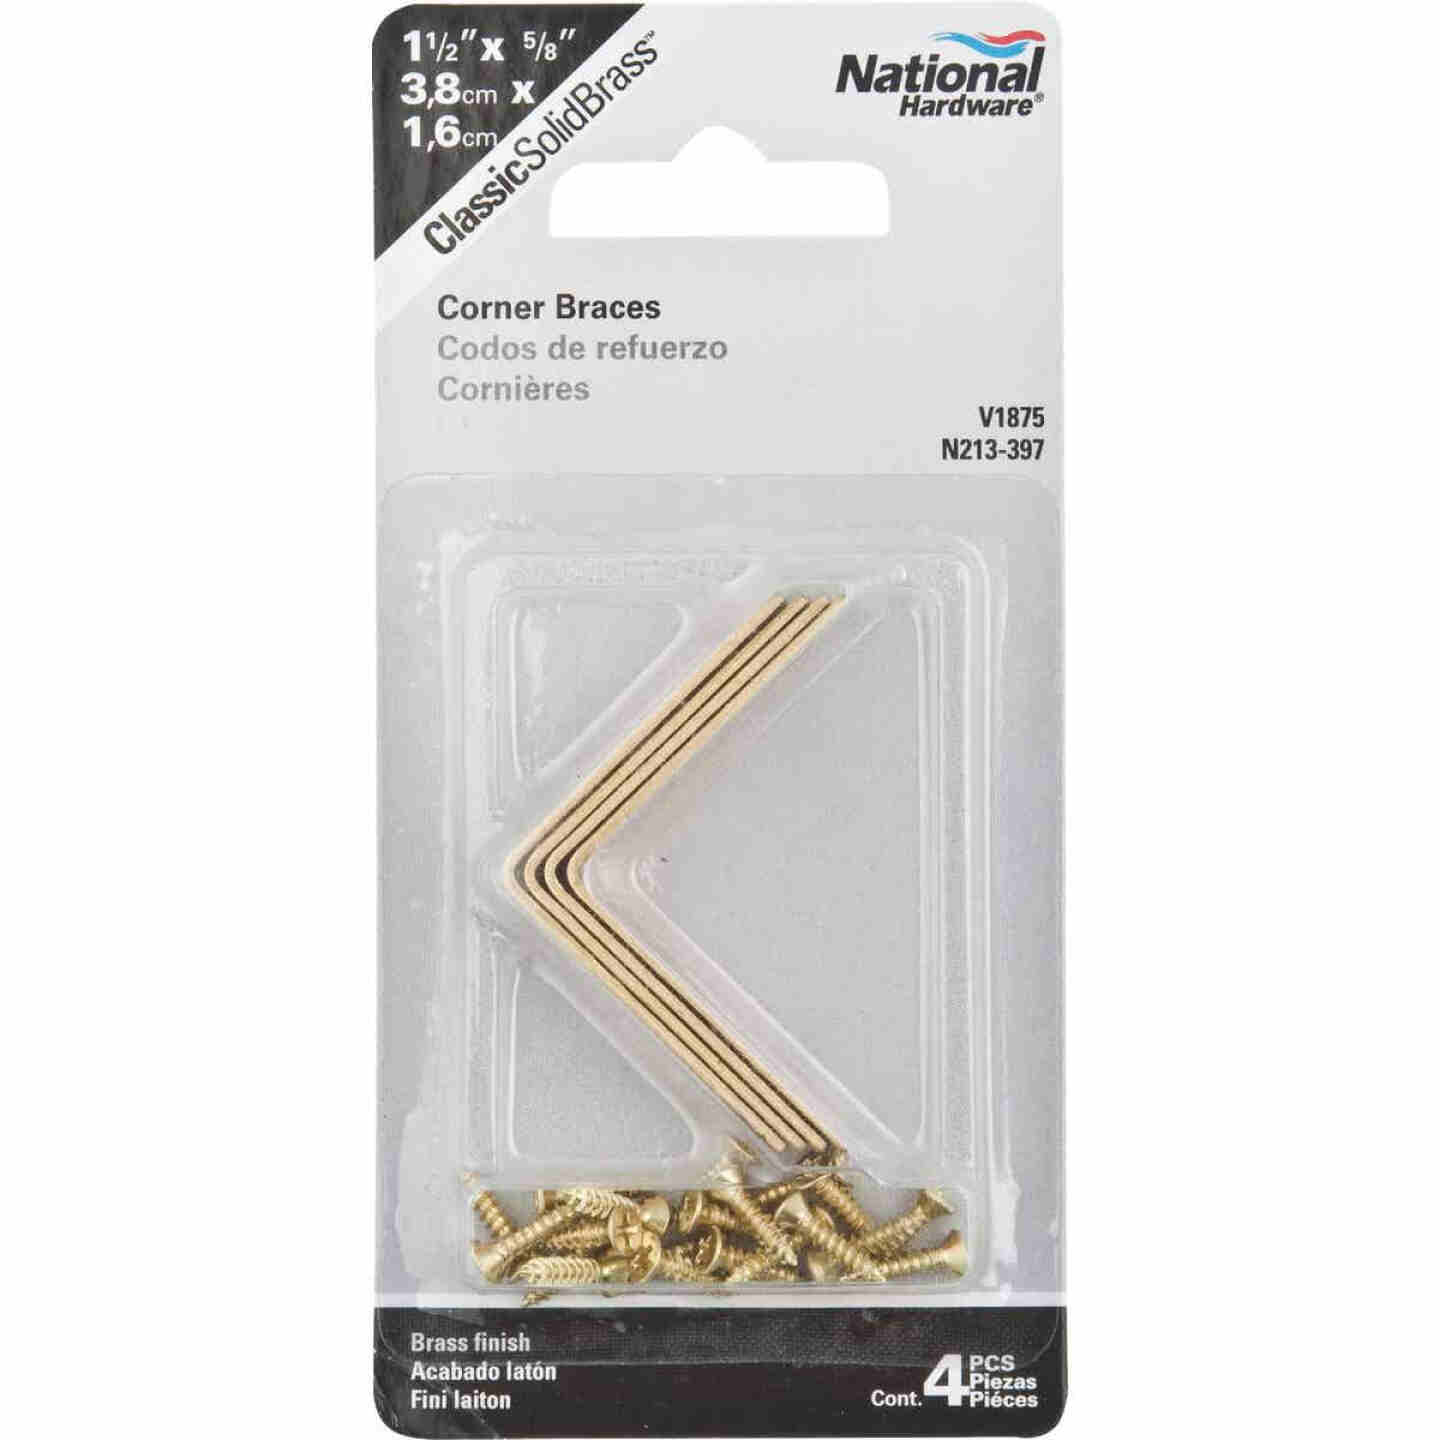 National Catalog V1875 1-1/2 In. x 5/8 In. Solid Brass Corner Brace Image 2